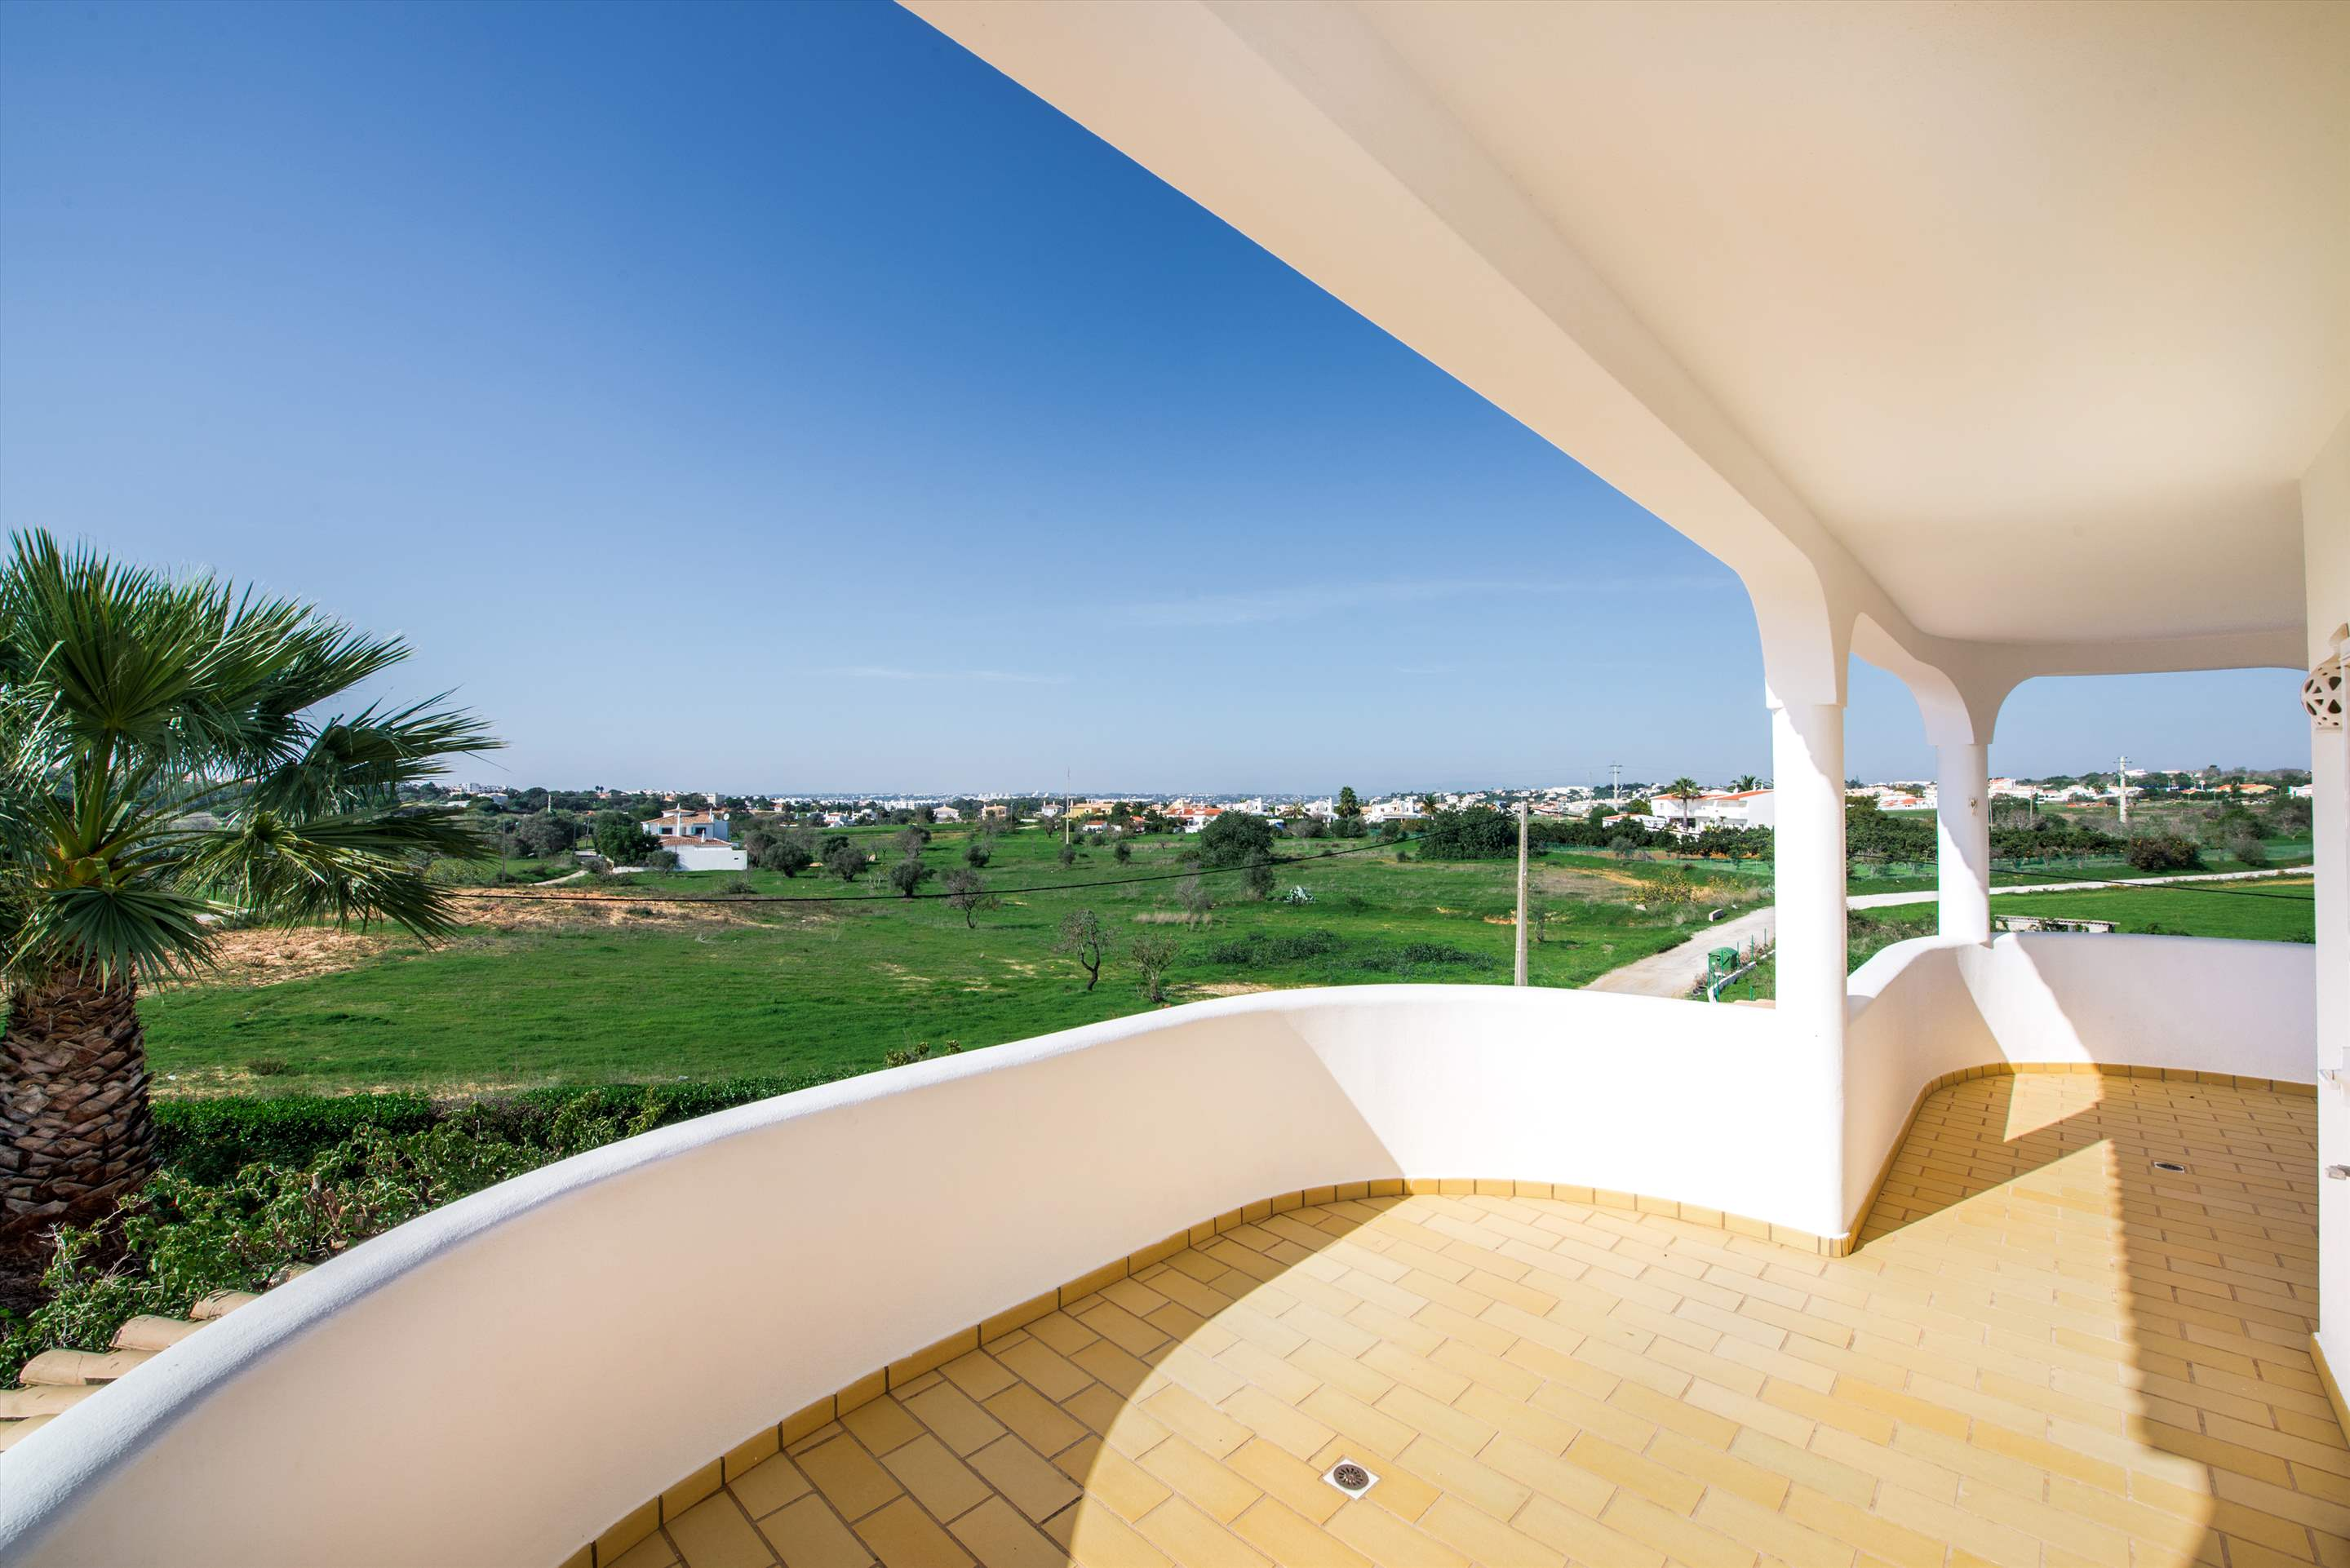 Villa Marco Real, 7-8 persons rate, 4 bedroom villa in Gale, Vale da Parra and Guia, Algarve Photo #26